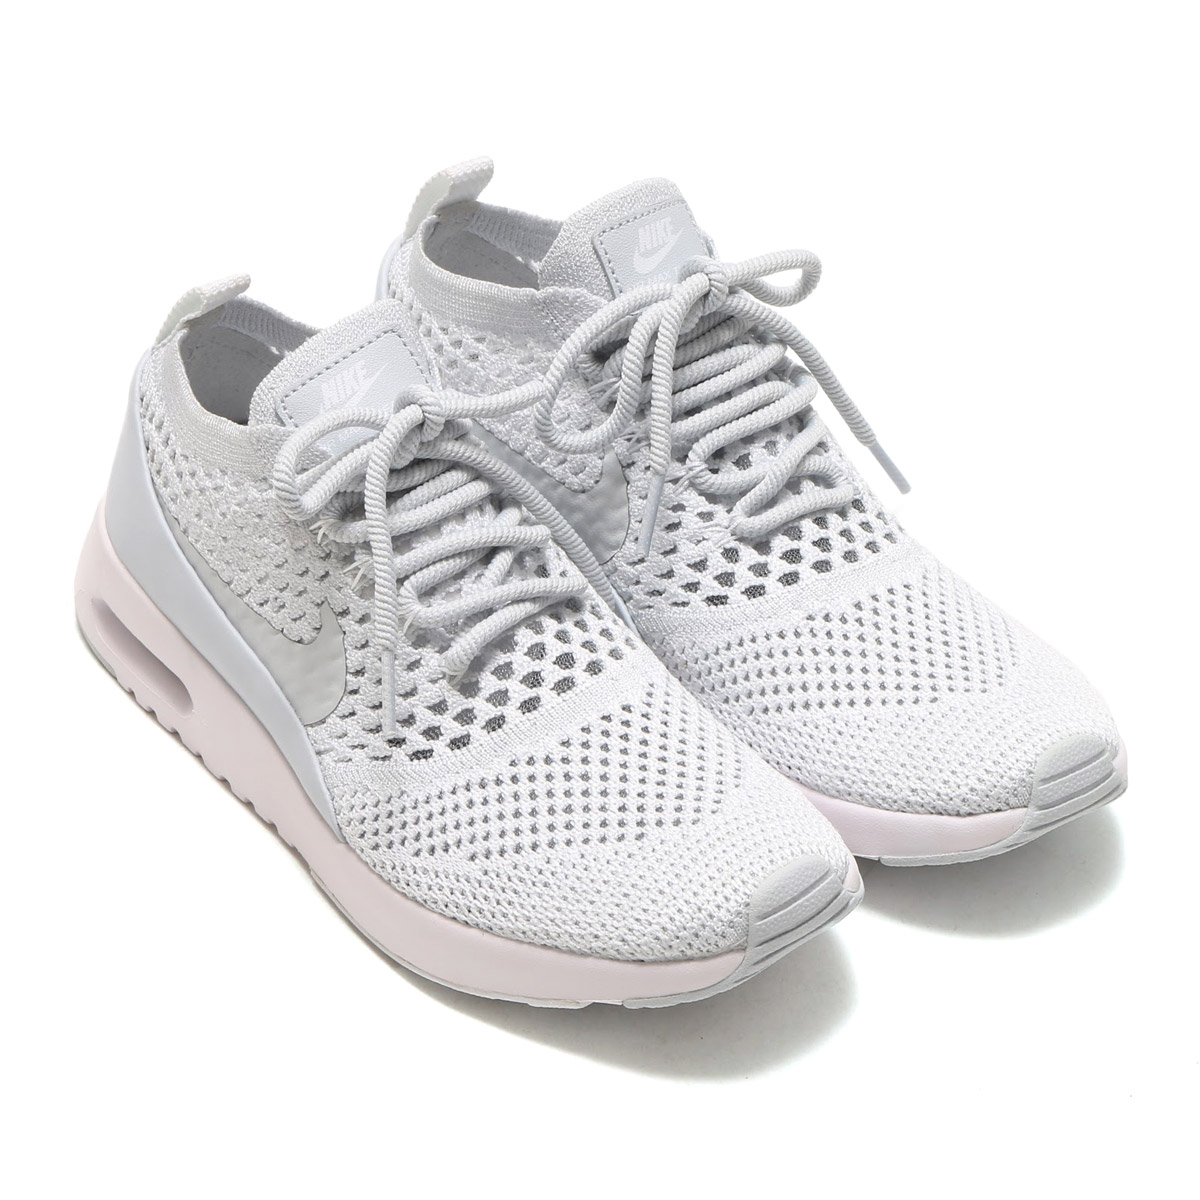 innovative design c7494 196ec NIKE WMNS AIR MAX THEA ULTRA FK (Nike women Air Max Shea ultra fly knit) PURE  PLATINUM PURE PLATINUM-WHITE 17SU-I